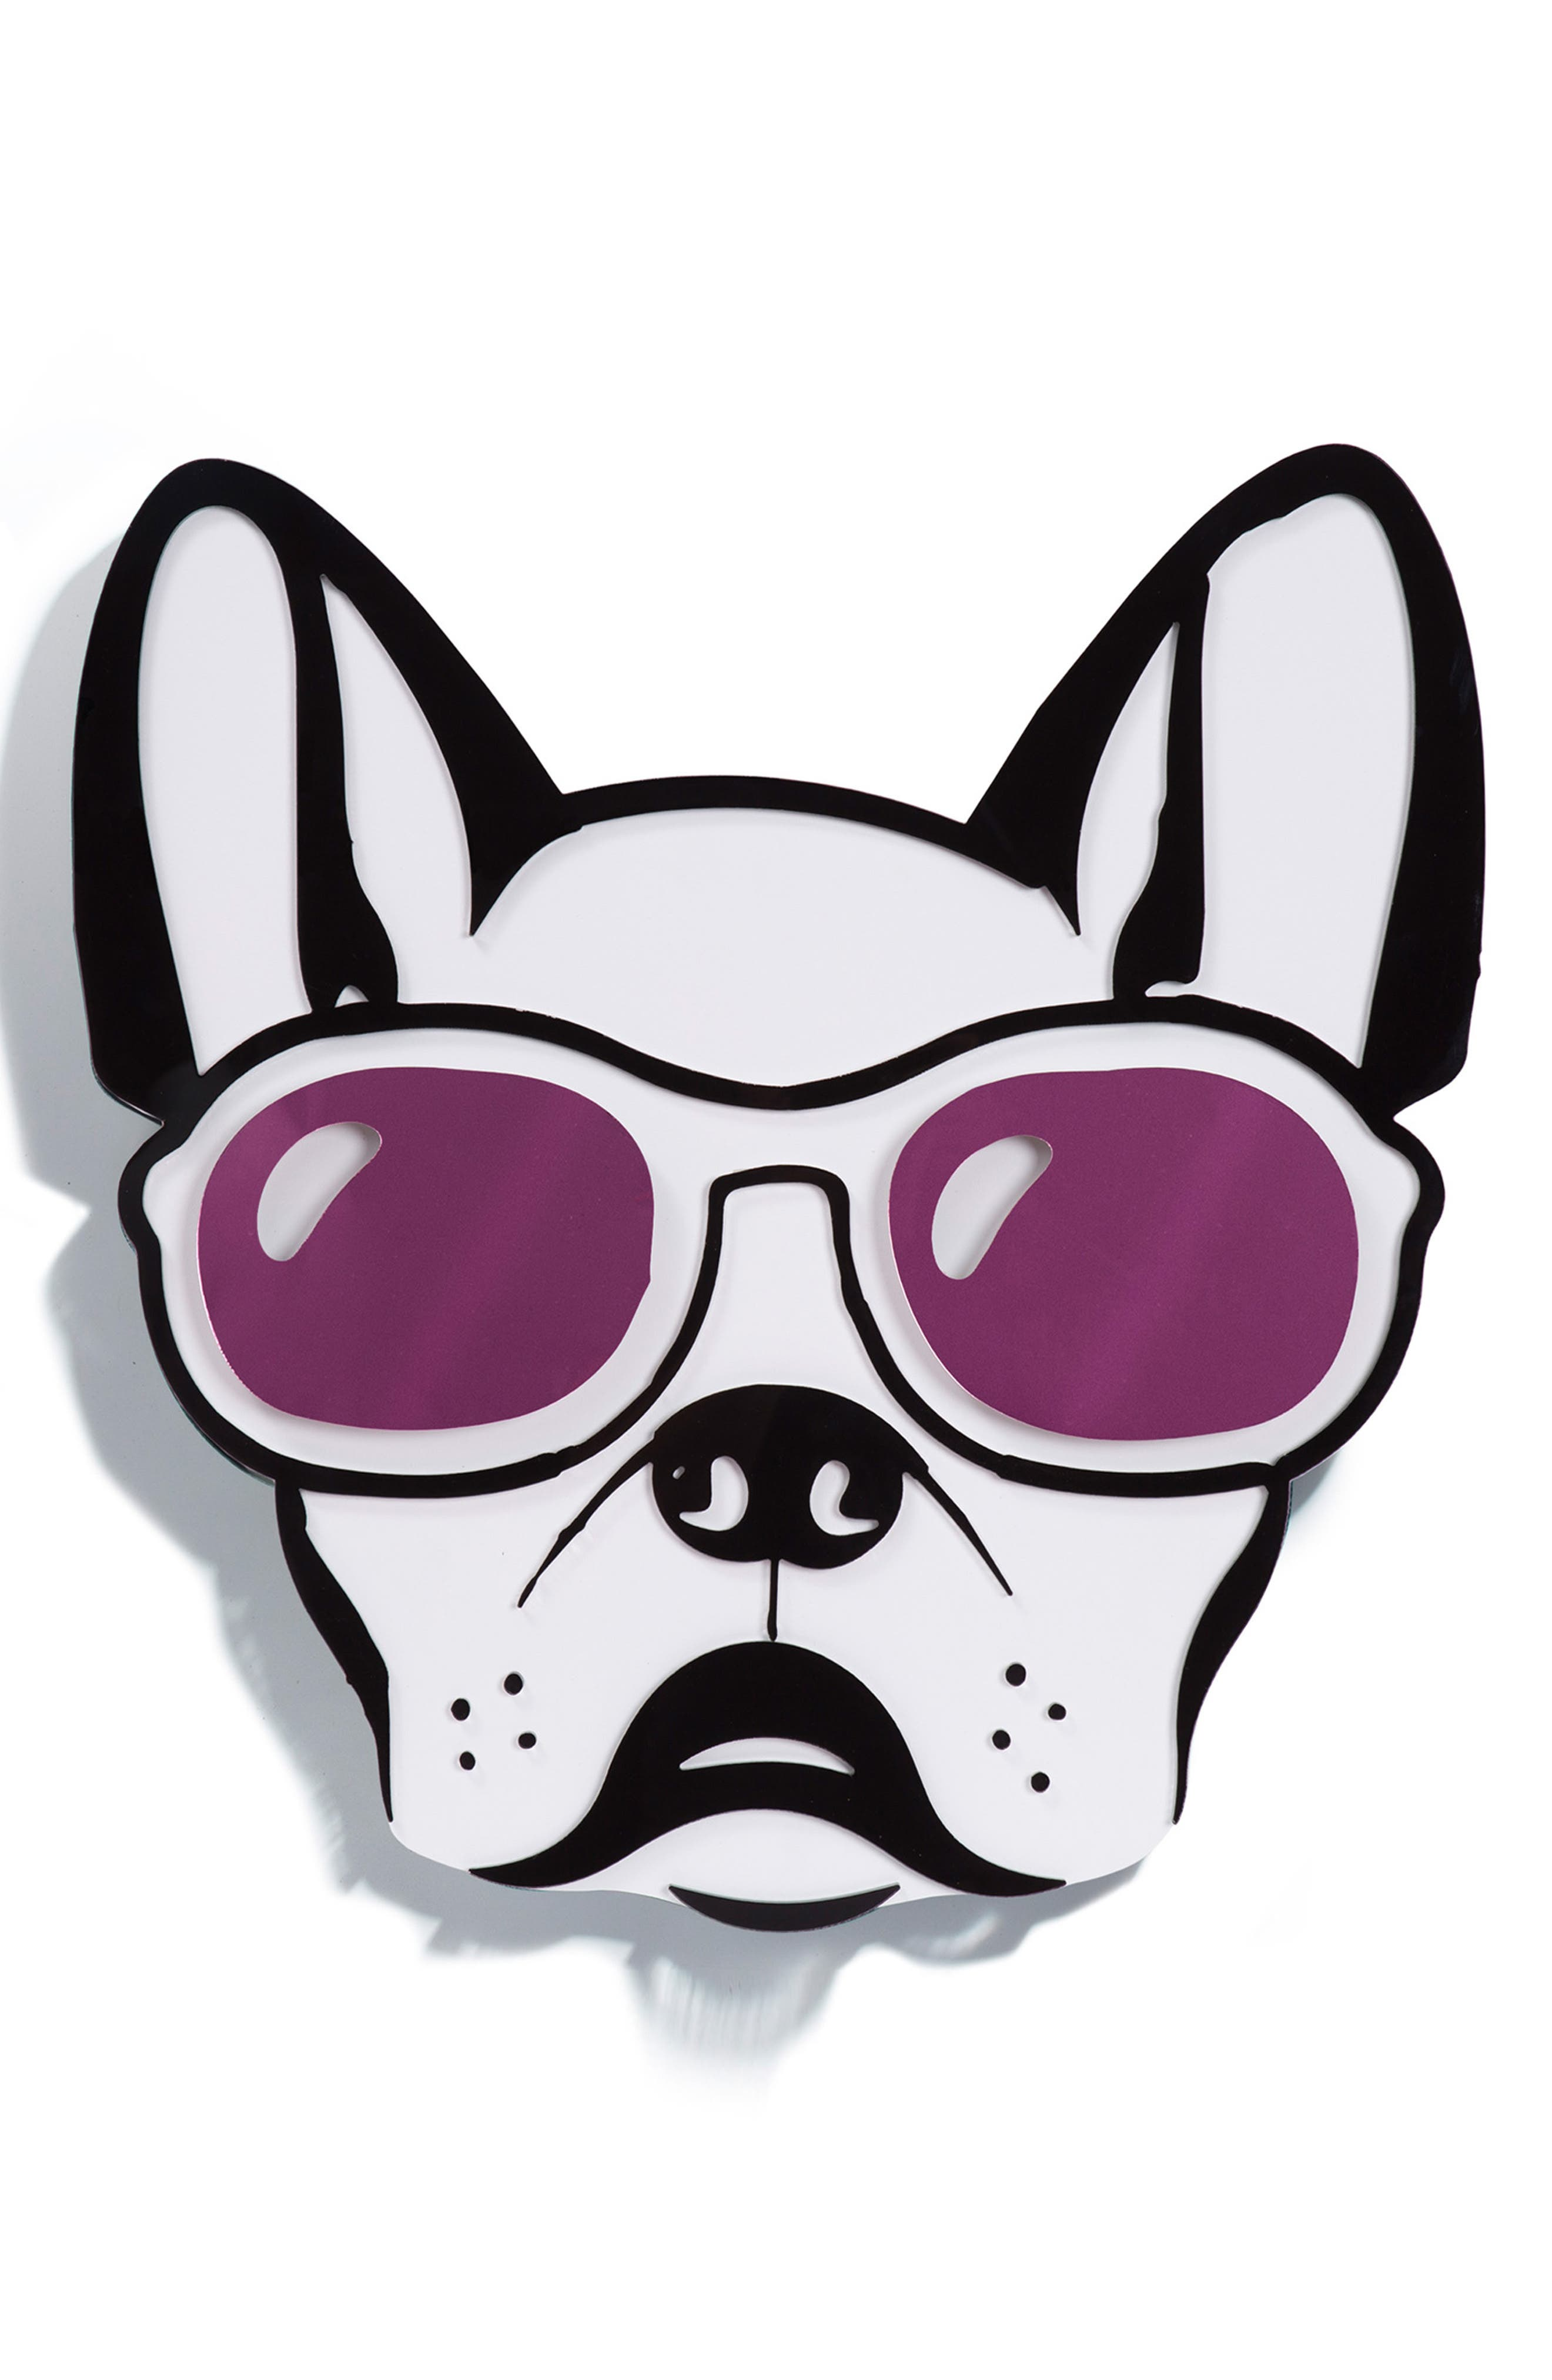 Cool Dog Wall Art, Main, color, PURPLE BLACK AND WHITE